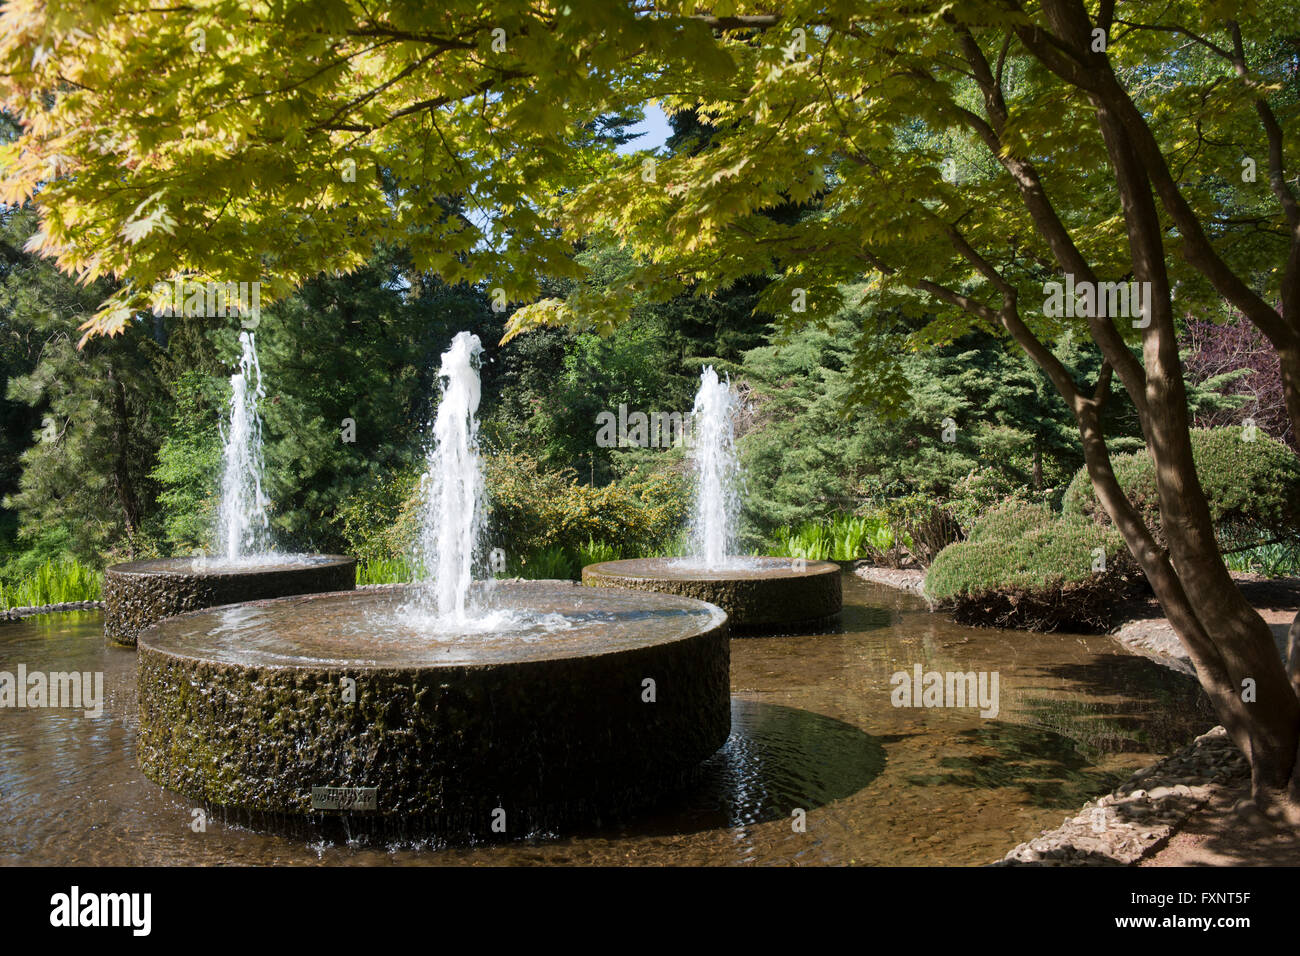 Koln Rodenkirchen High Resolution Stock Photography And Images Alamy